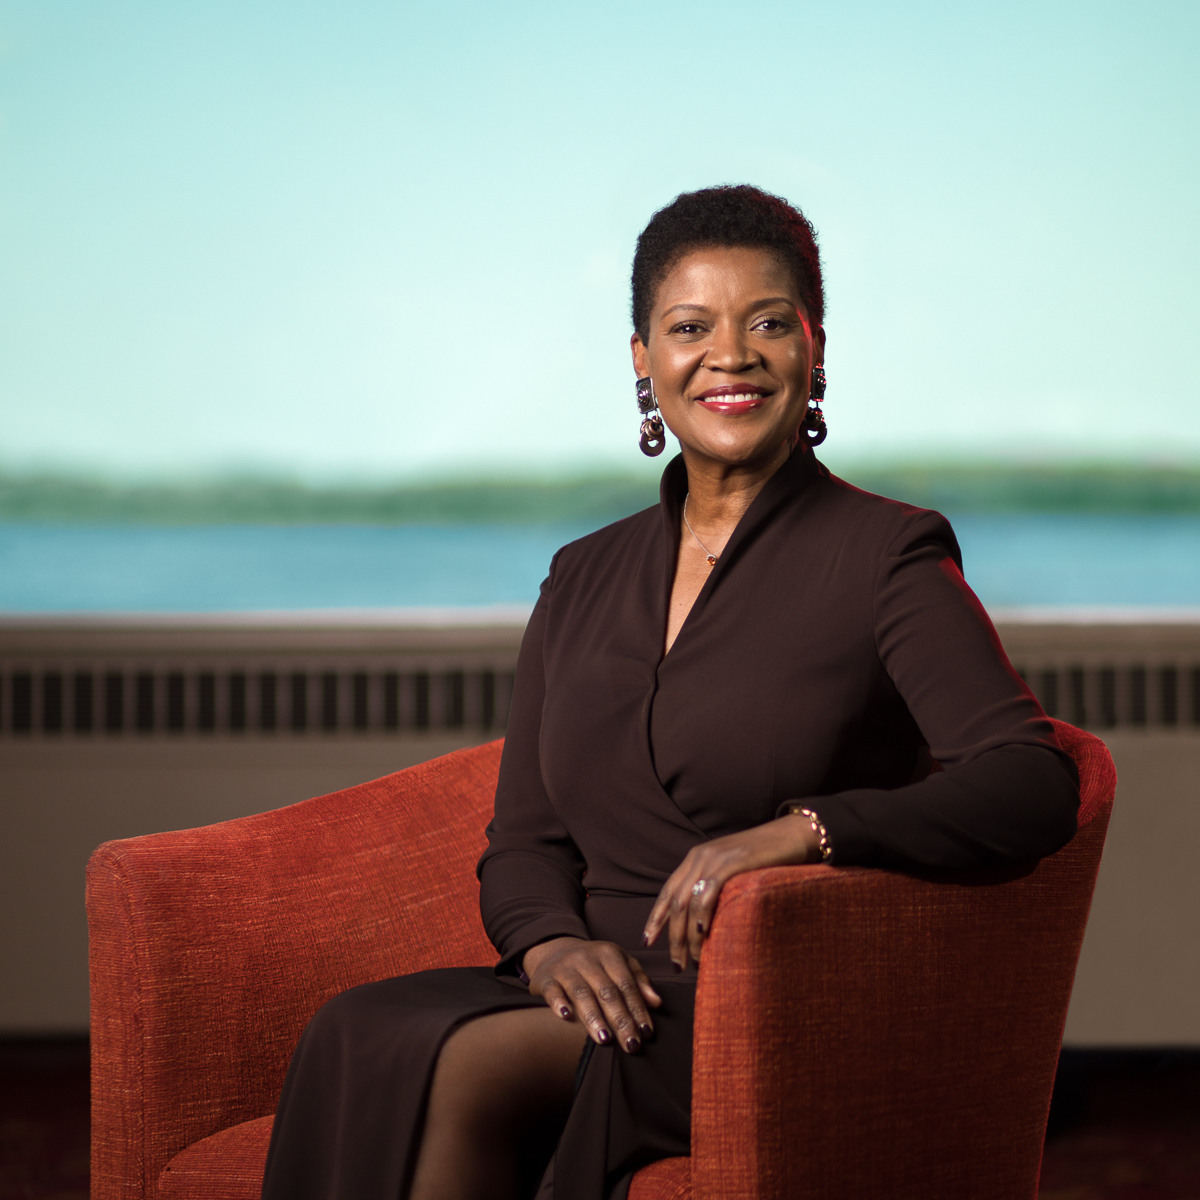 © Spencer Micka Photography